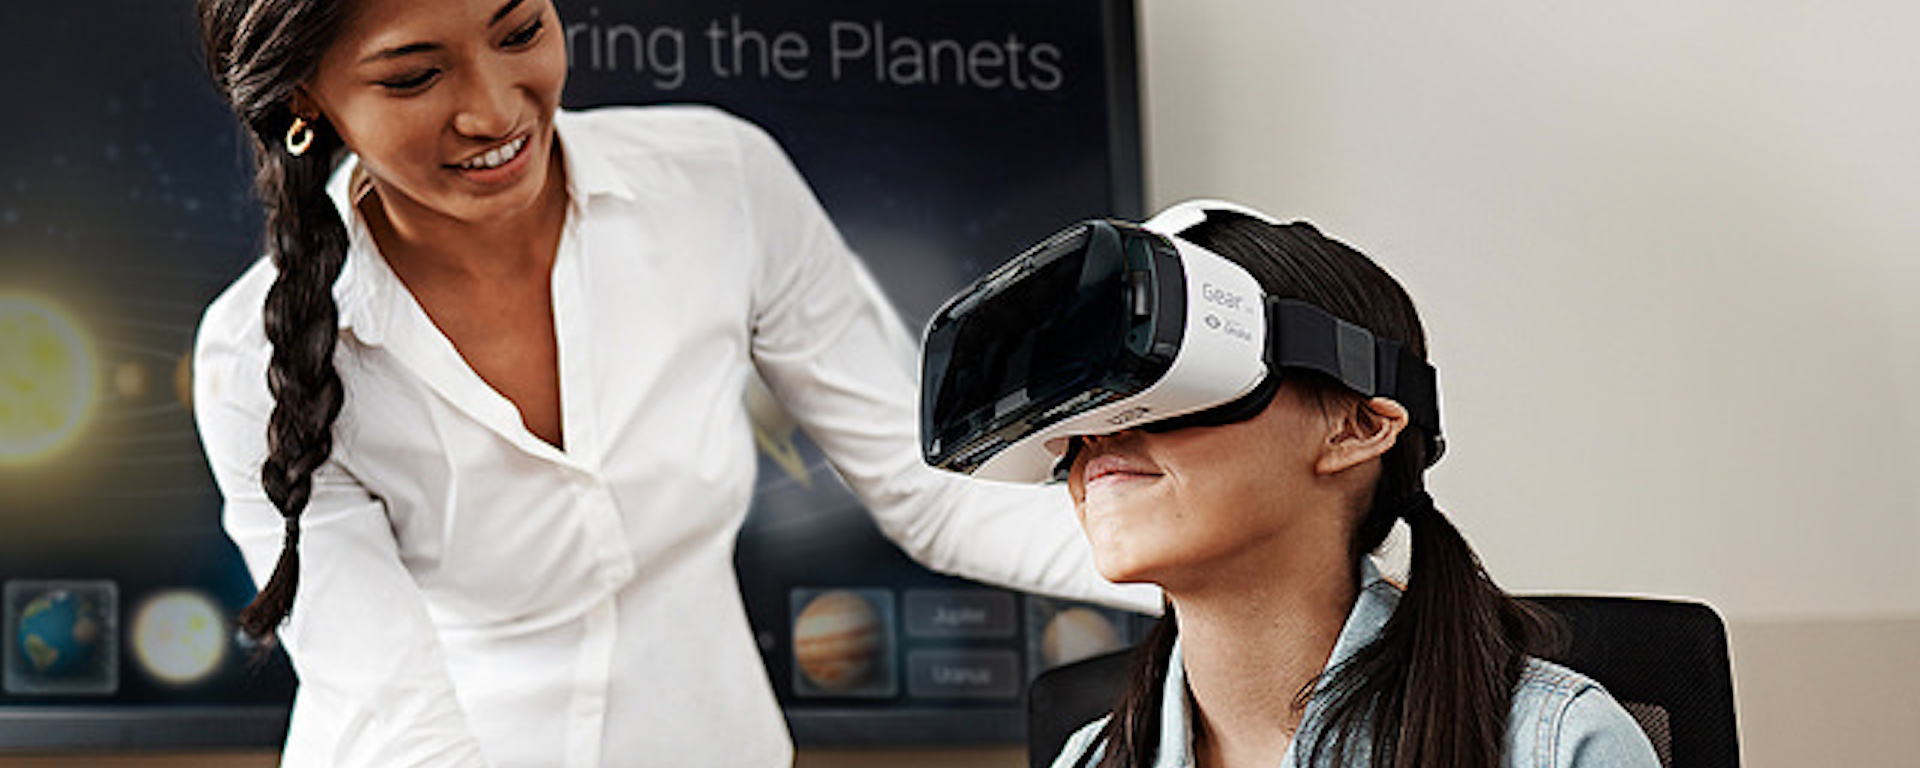 virtual reality and education The ultimate guide to education applications of virtual, augmented and mixed reality we examine applications such as virtual reality field trips and interactive educational content.